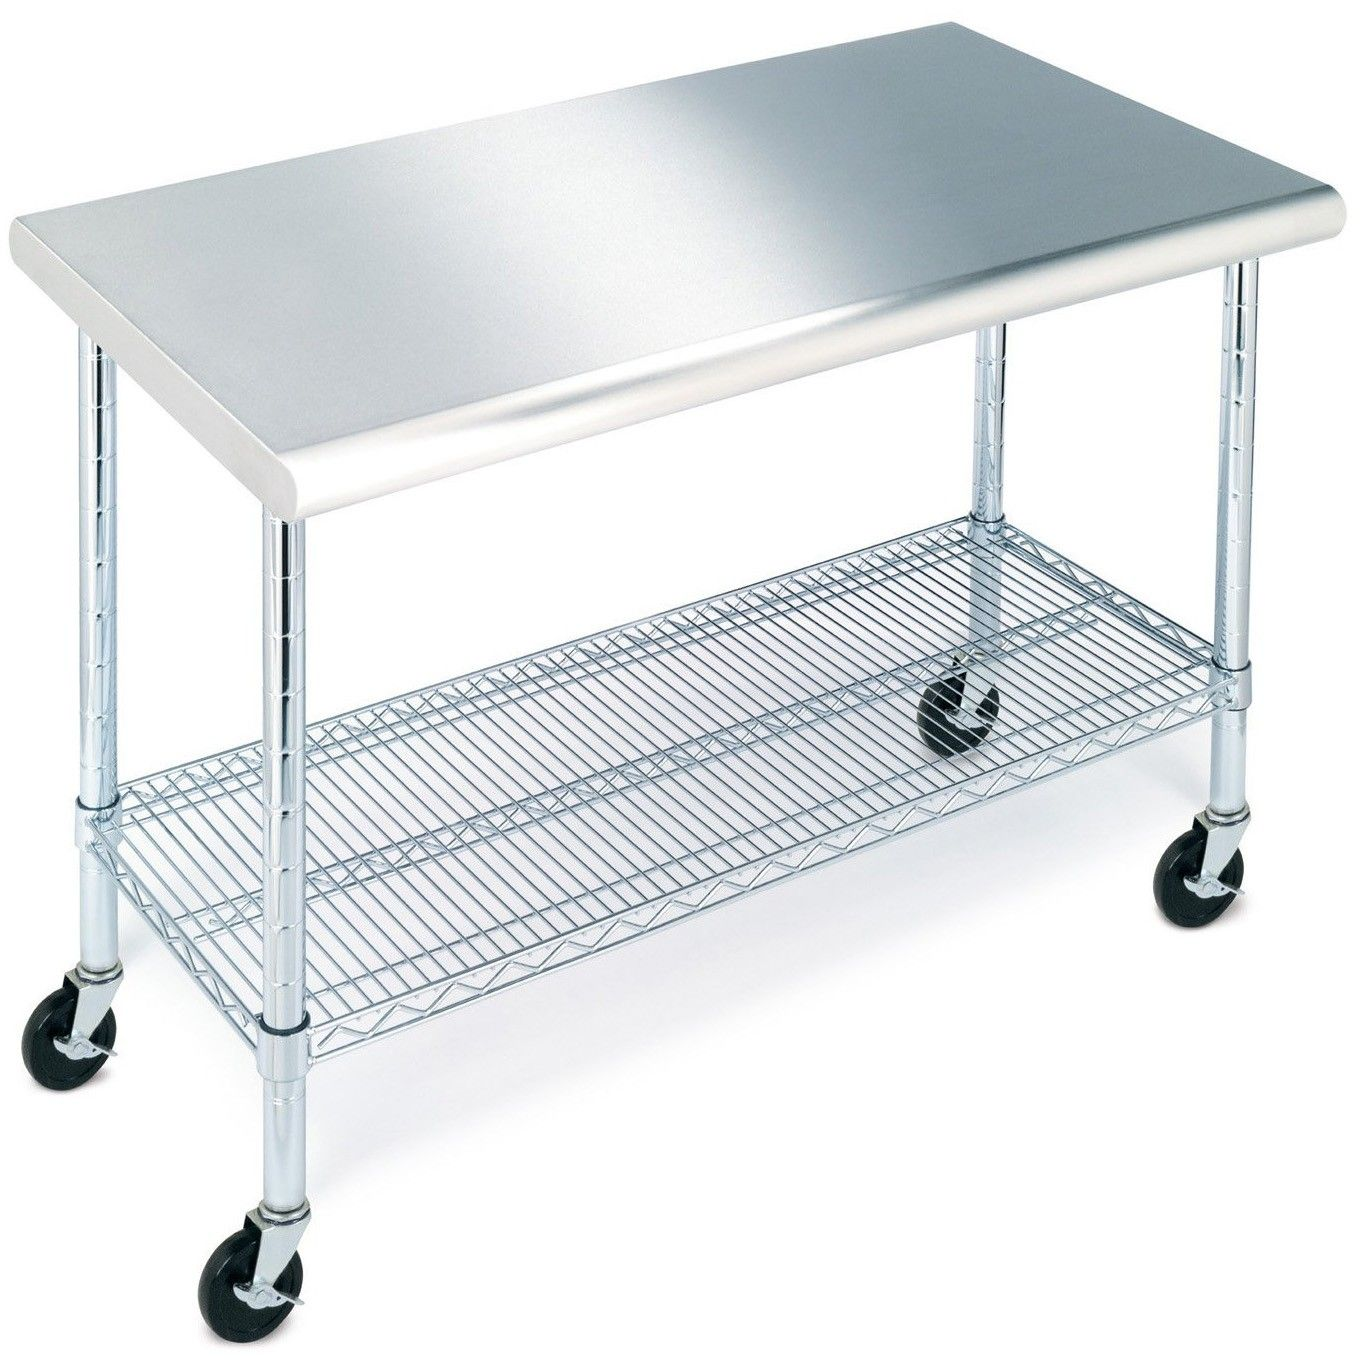 Mesa para cocina acero inoxidable | 11. decor | Stainless steel work ...